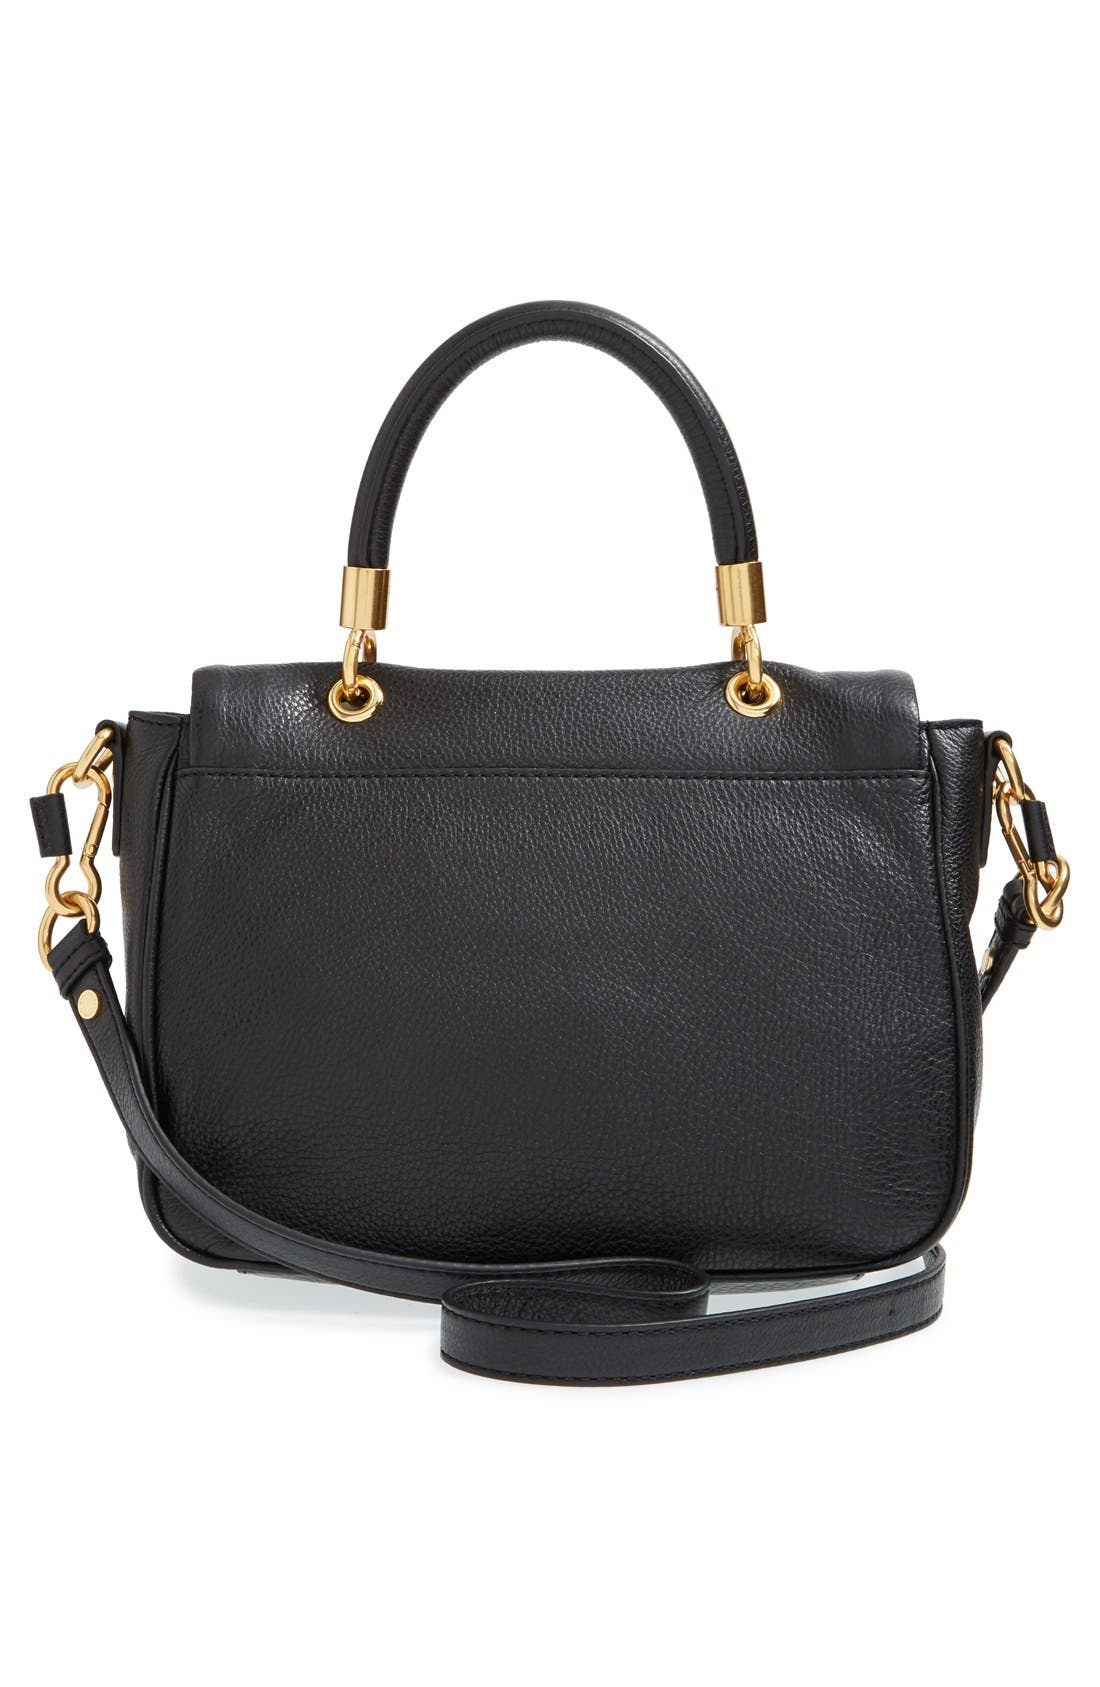 MARC BY MARC JACOBS 'Small Too Hot To Handle' Leather Tote,                             Alternate thumbnail 3, color,                             Black